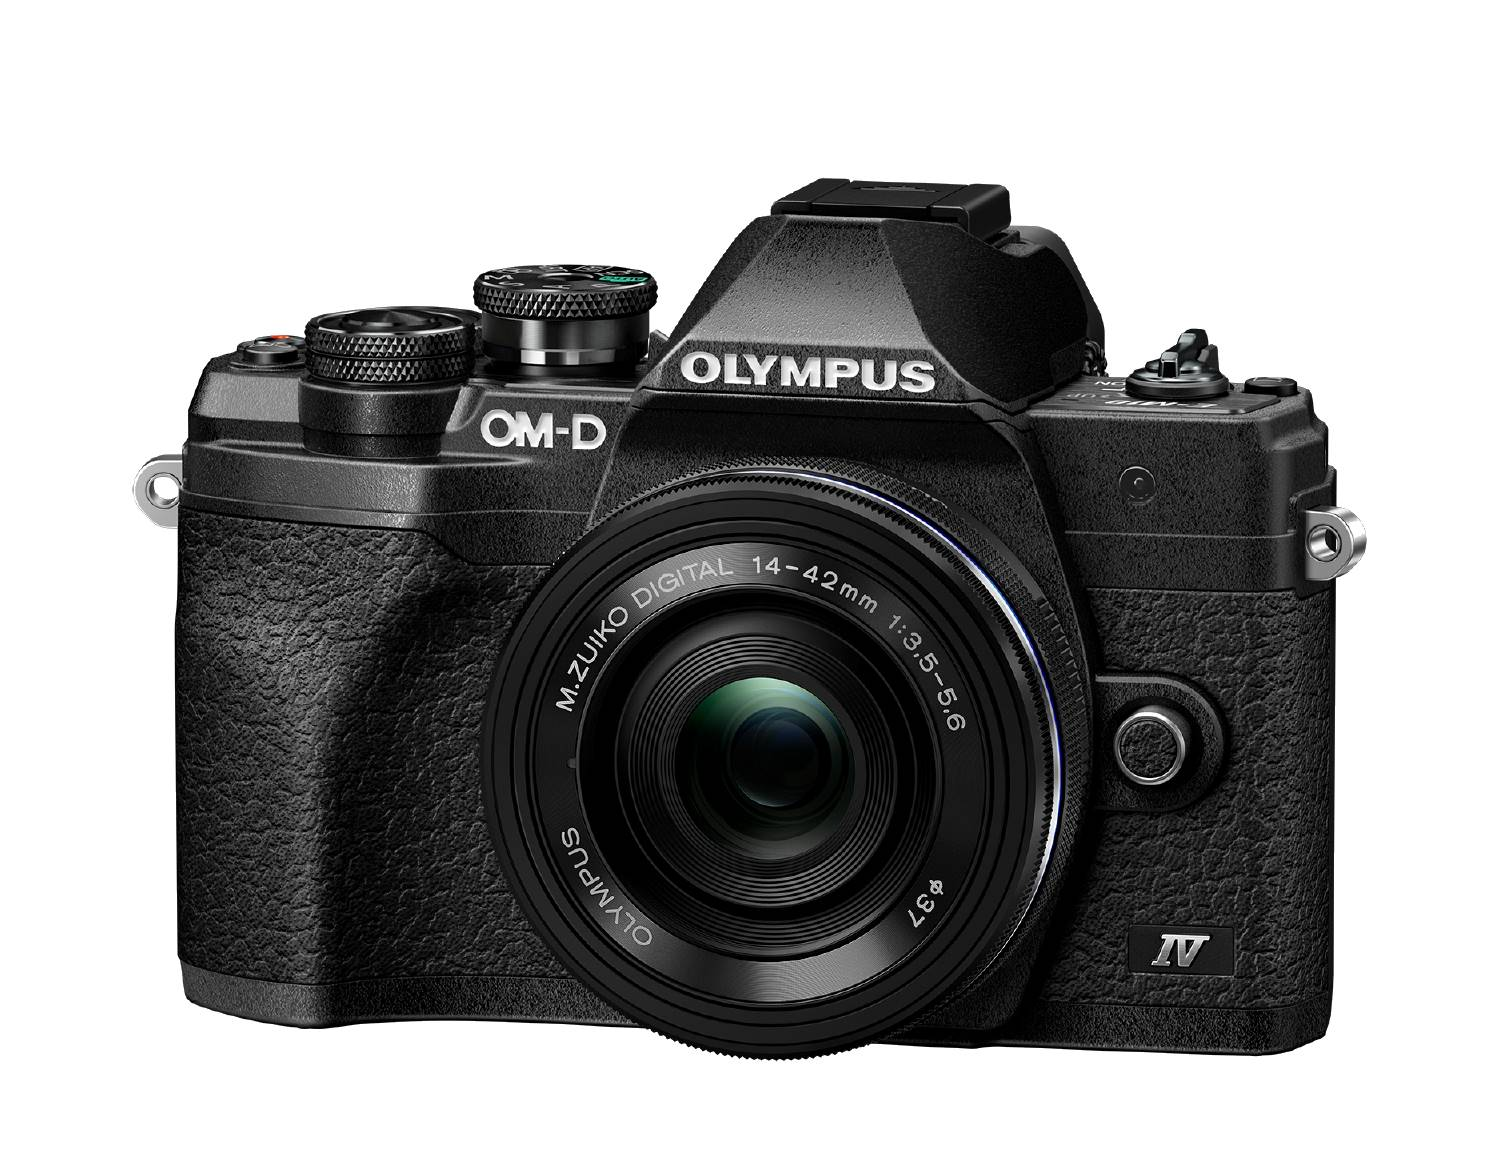 Olympus OM-D E-M10 Mark IV announcement